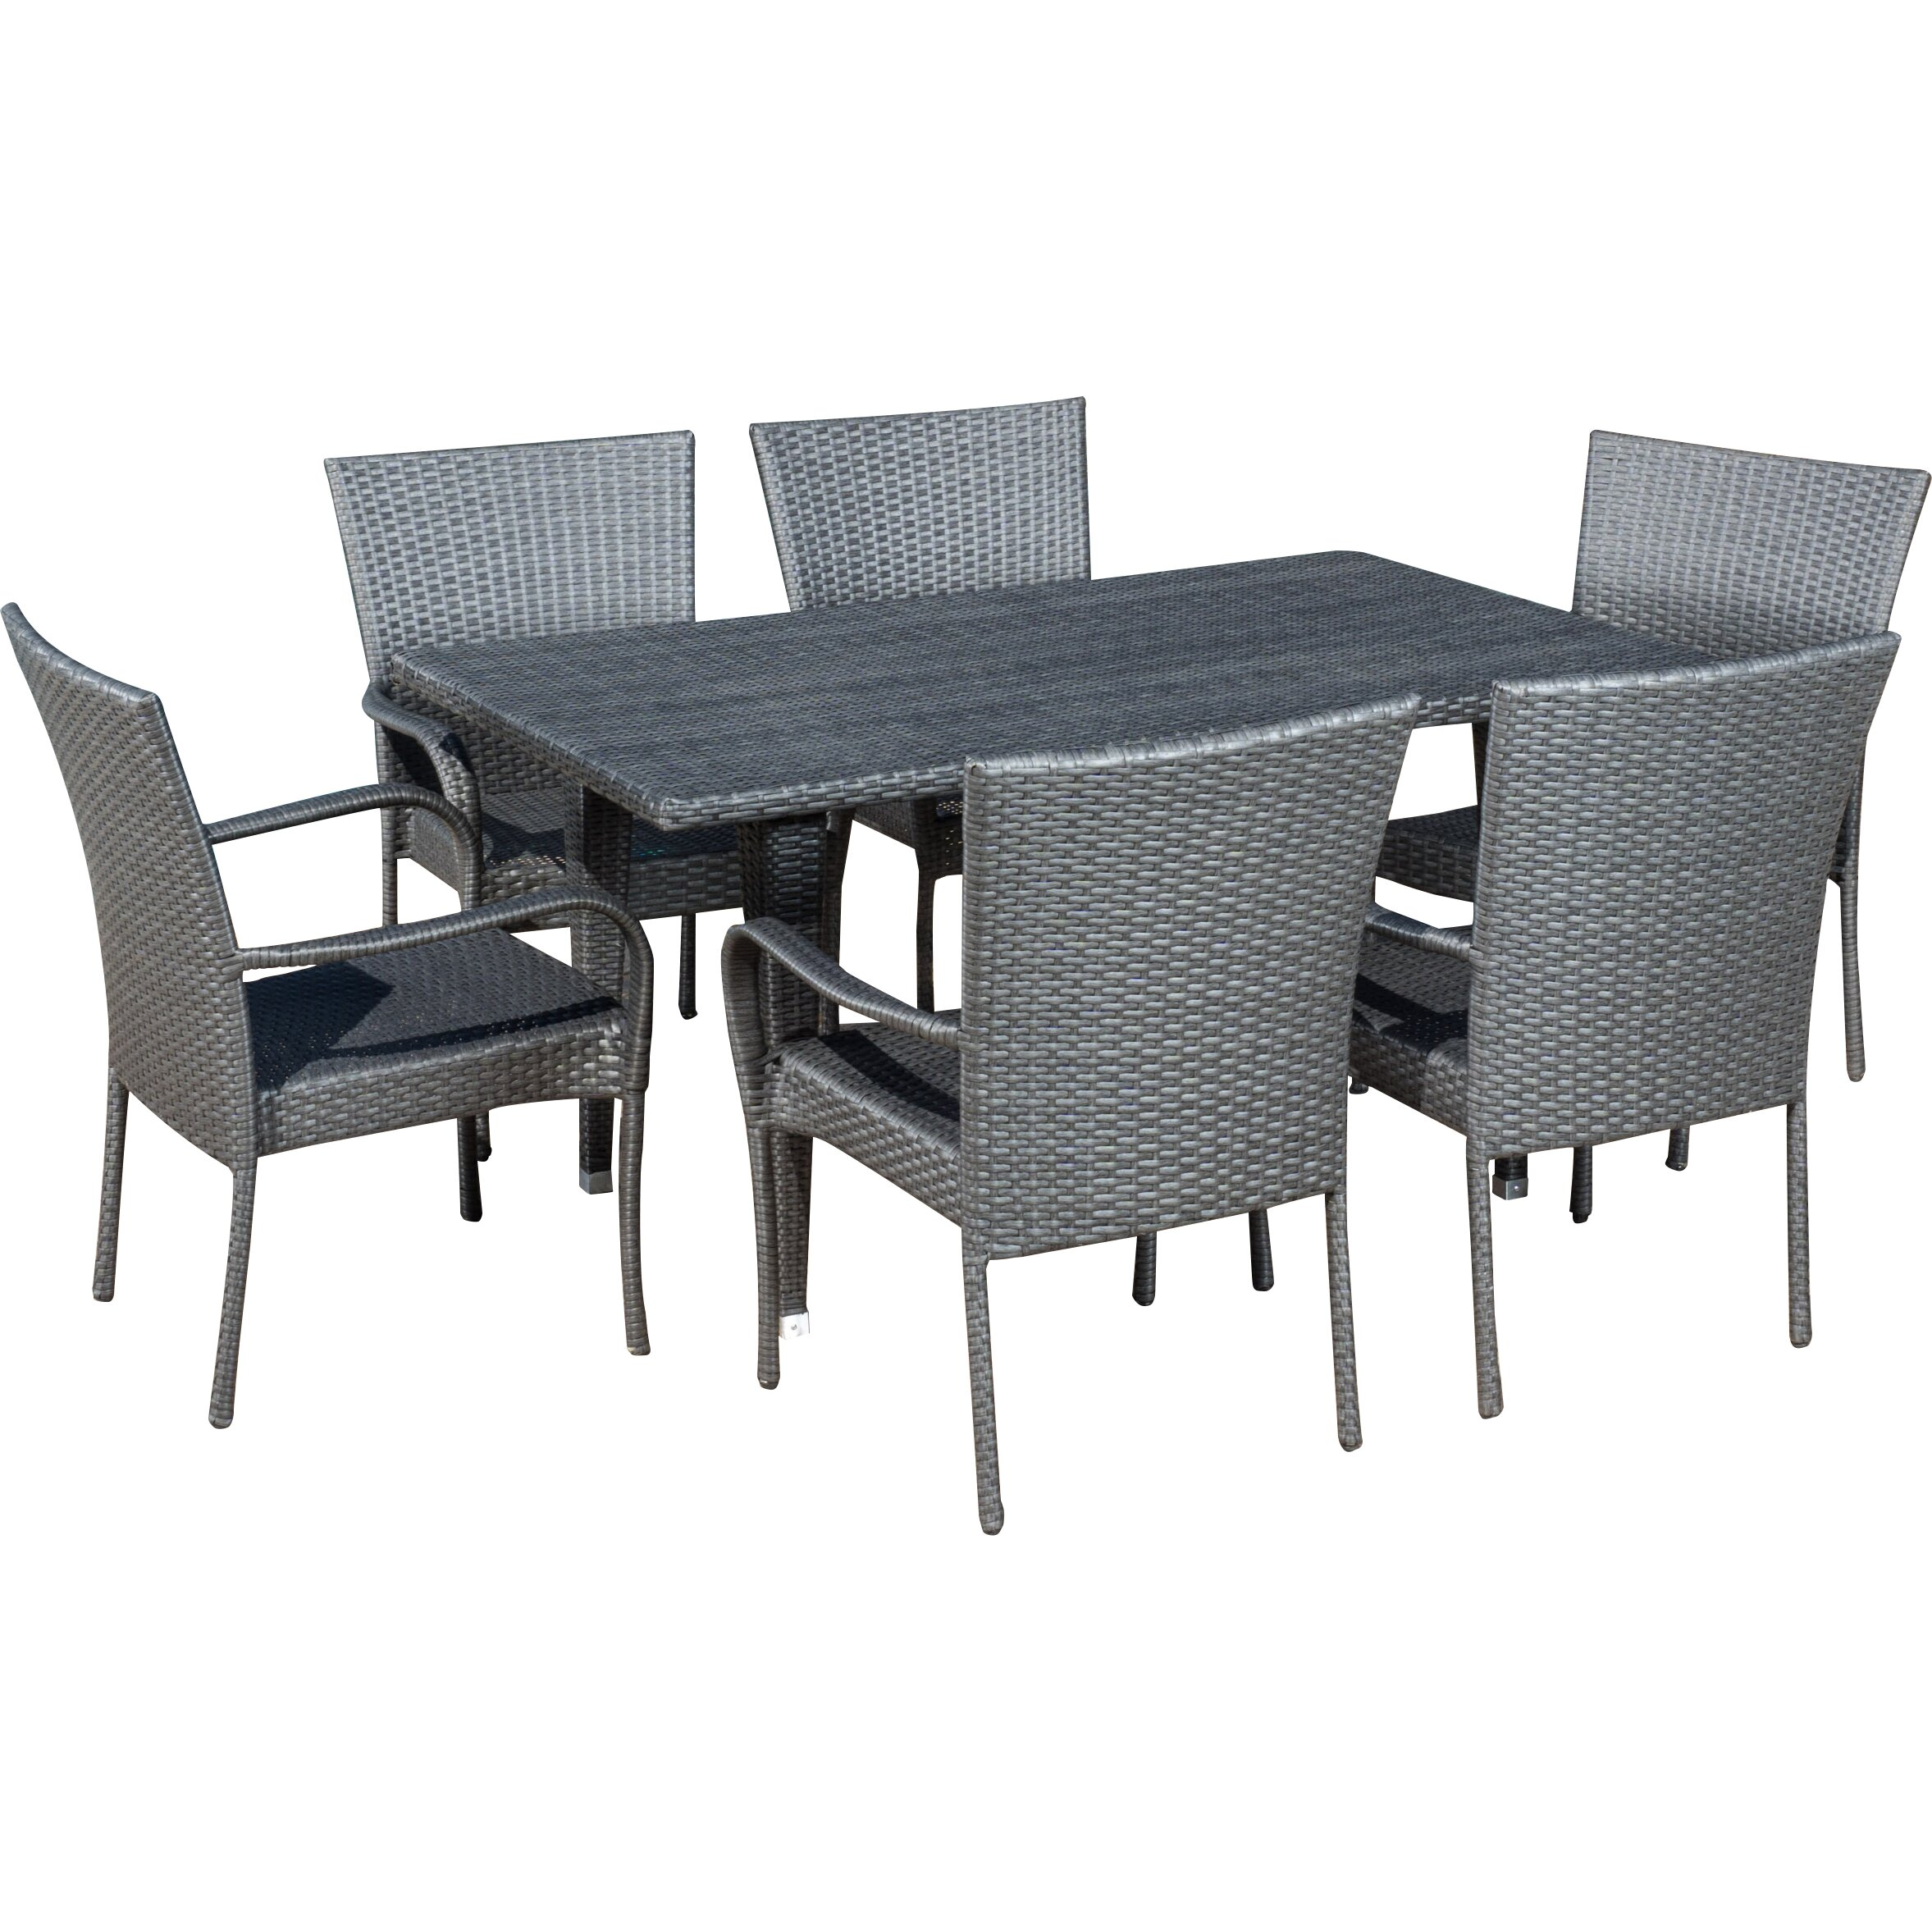 Latitude run marissa outdoor 7 piece dining set reviews for Outdoor furniture 7 piece